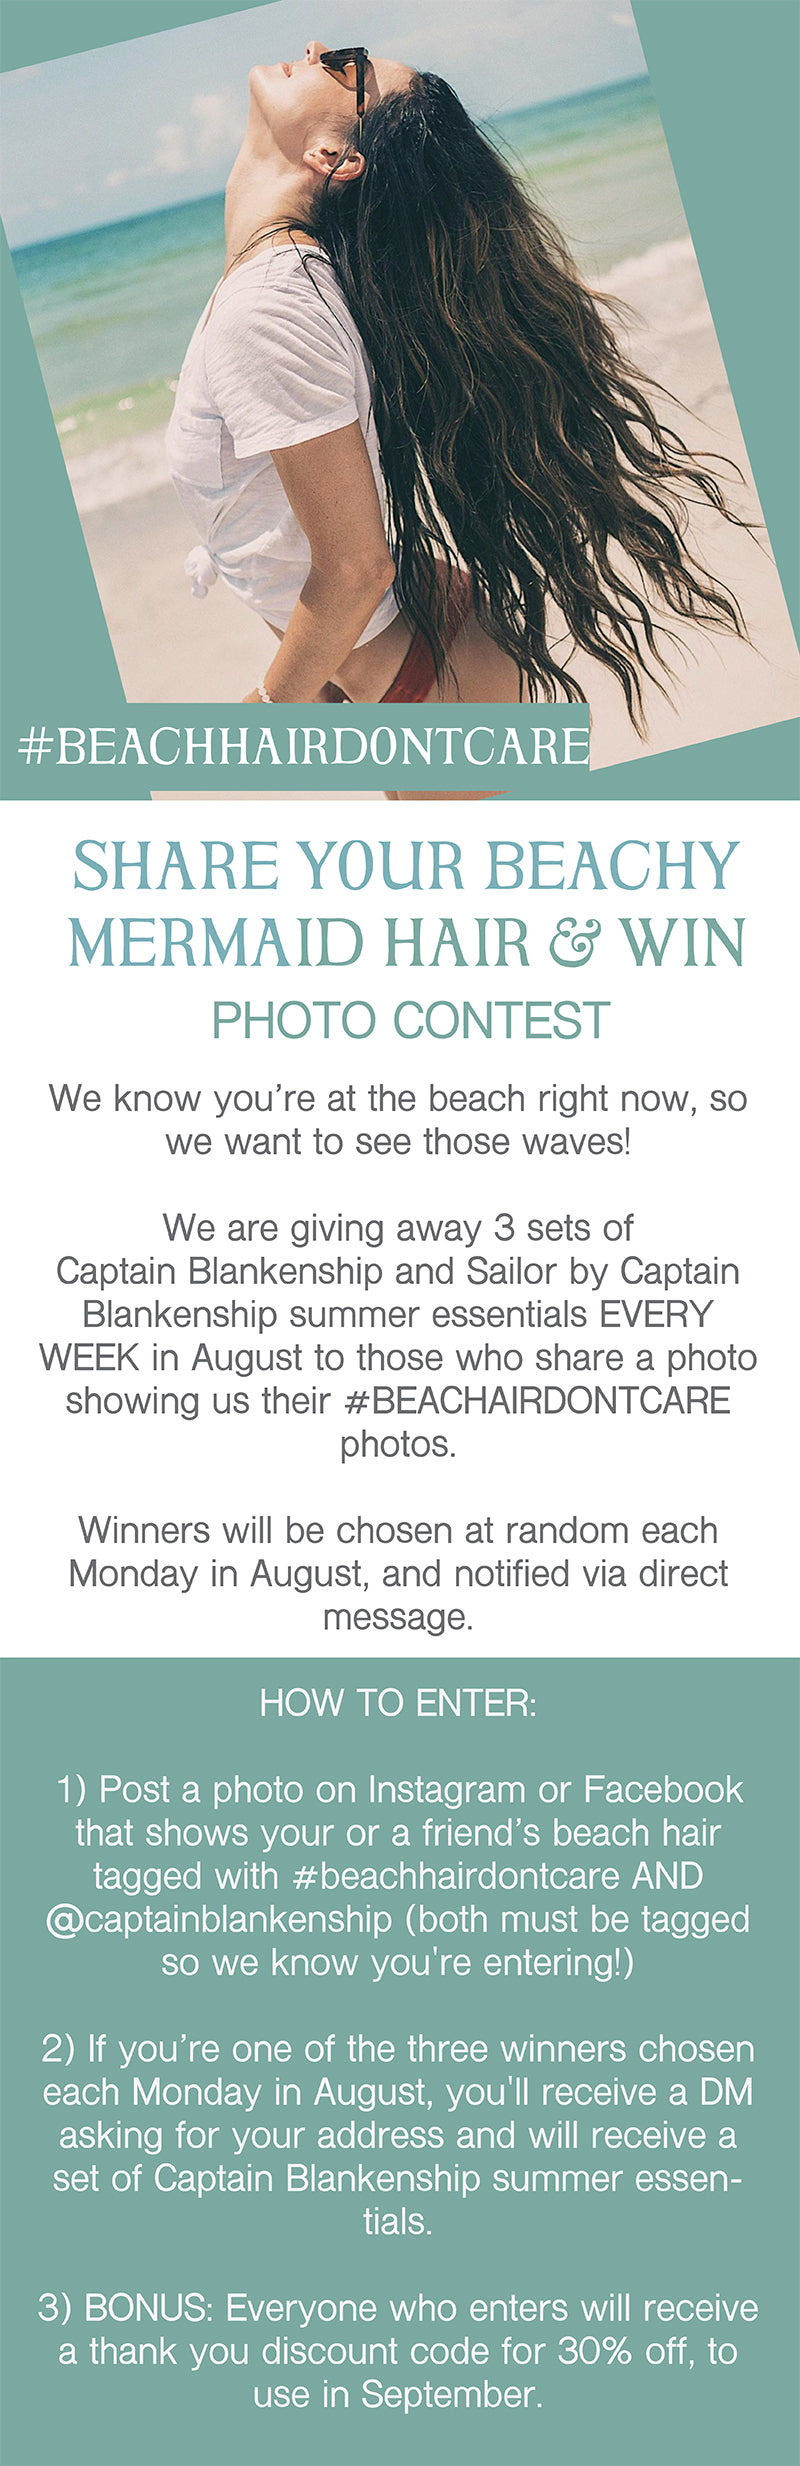 #BEACHHAIRDONTCARE photo contest, win summer essentials from Captain Blankenship